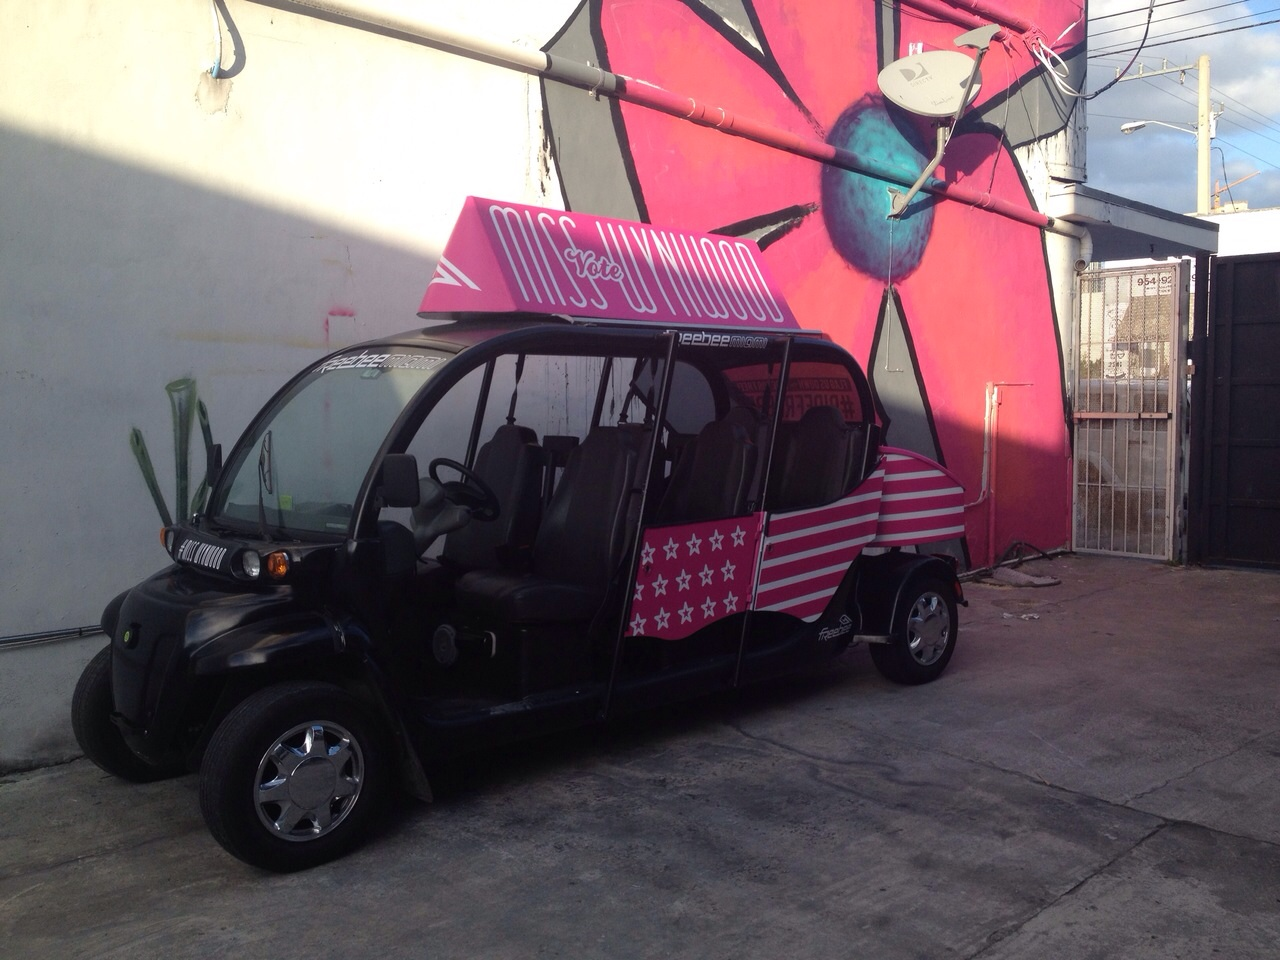 miss-wynwood-car-2014-11-30-16-42-37.jpg